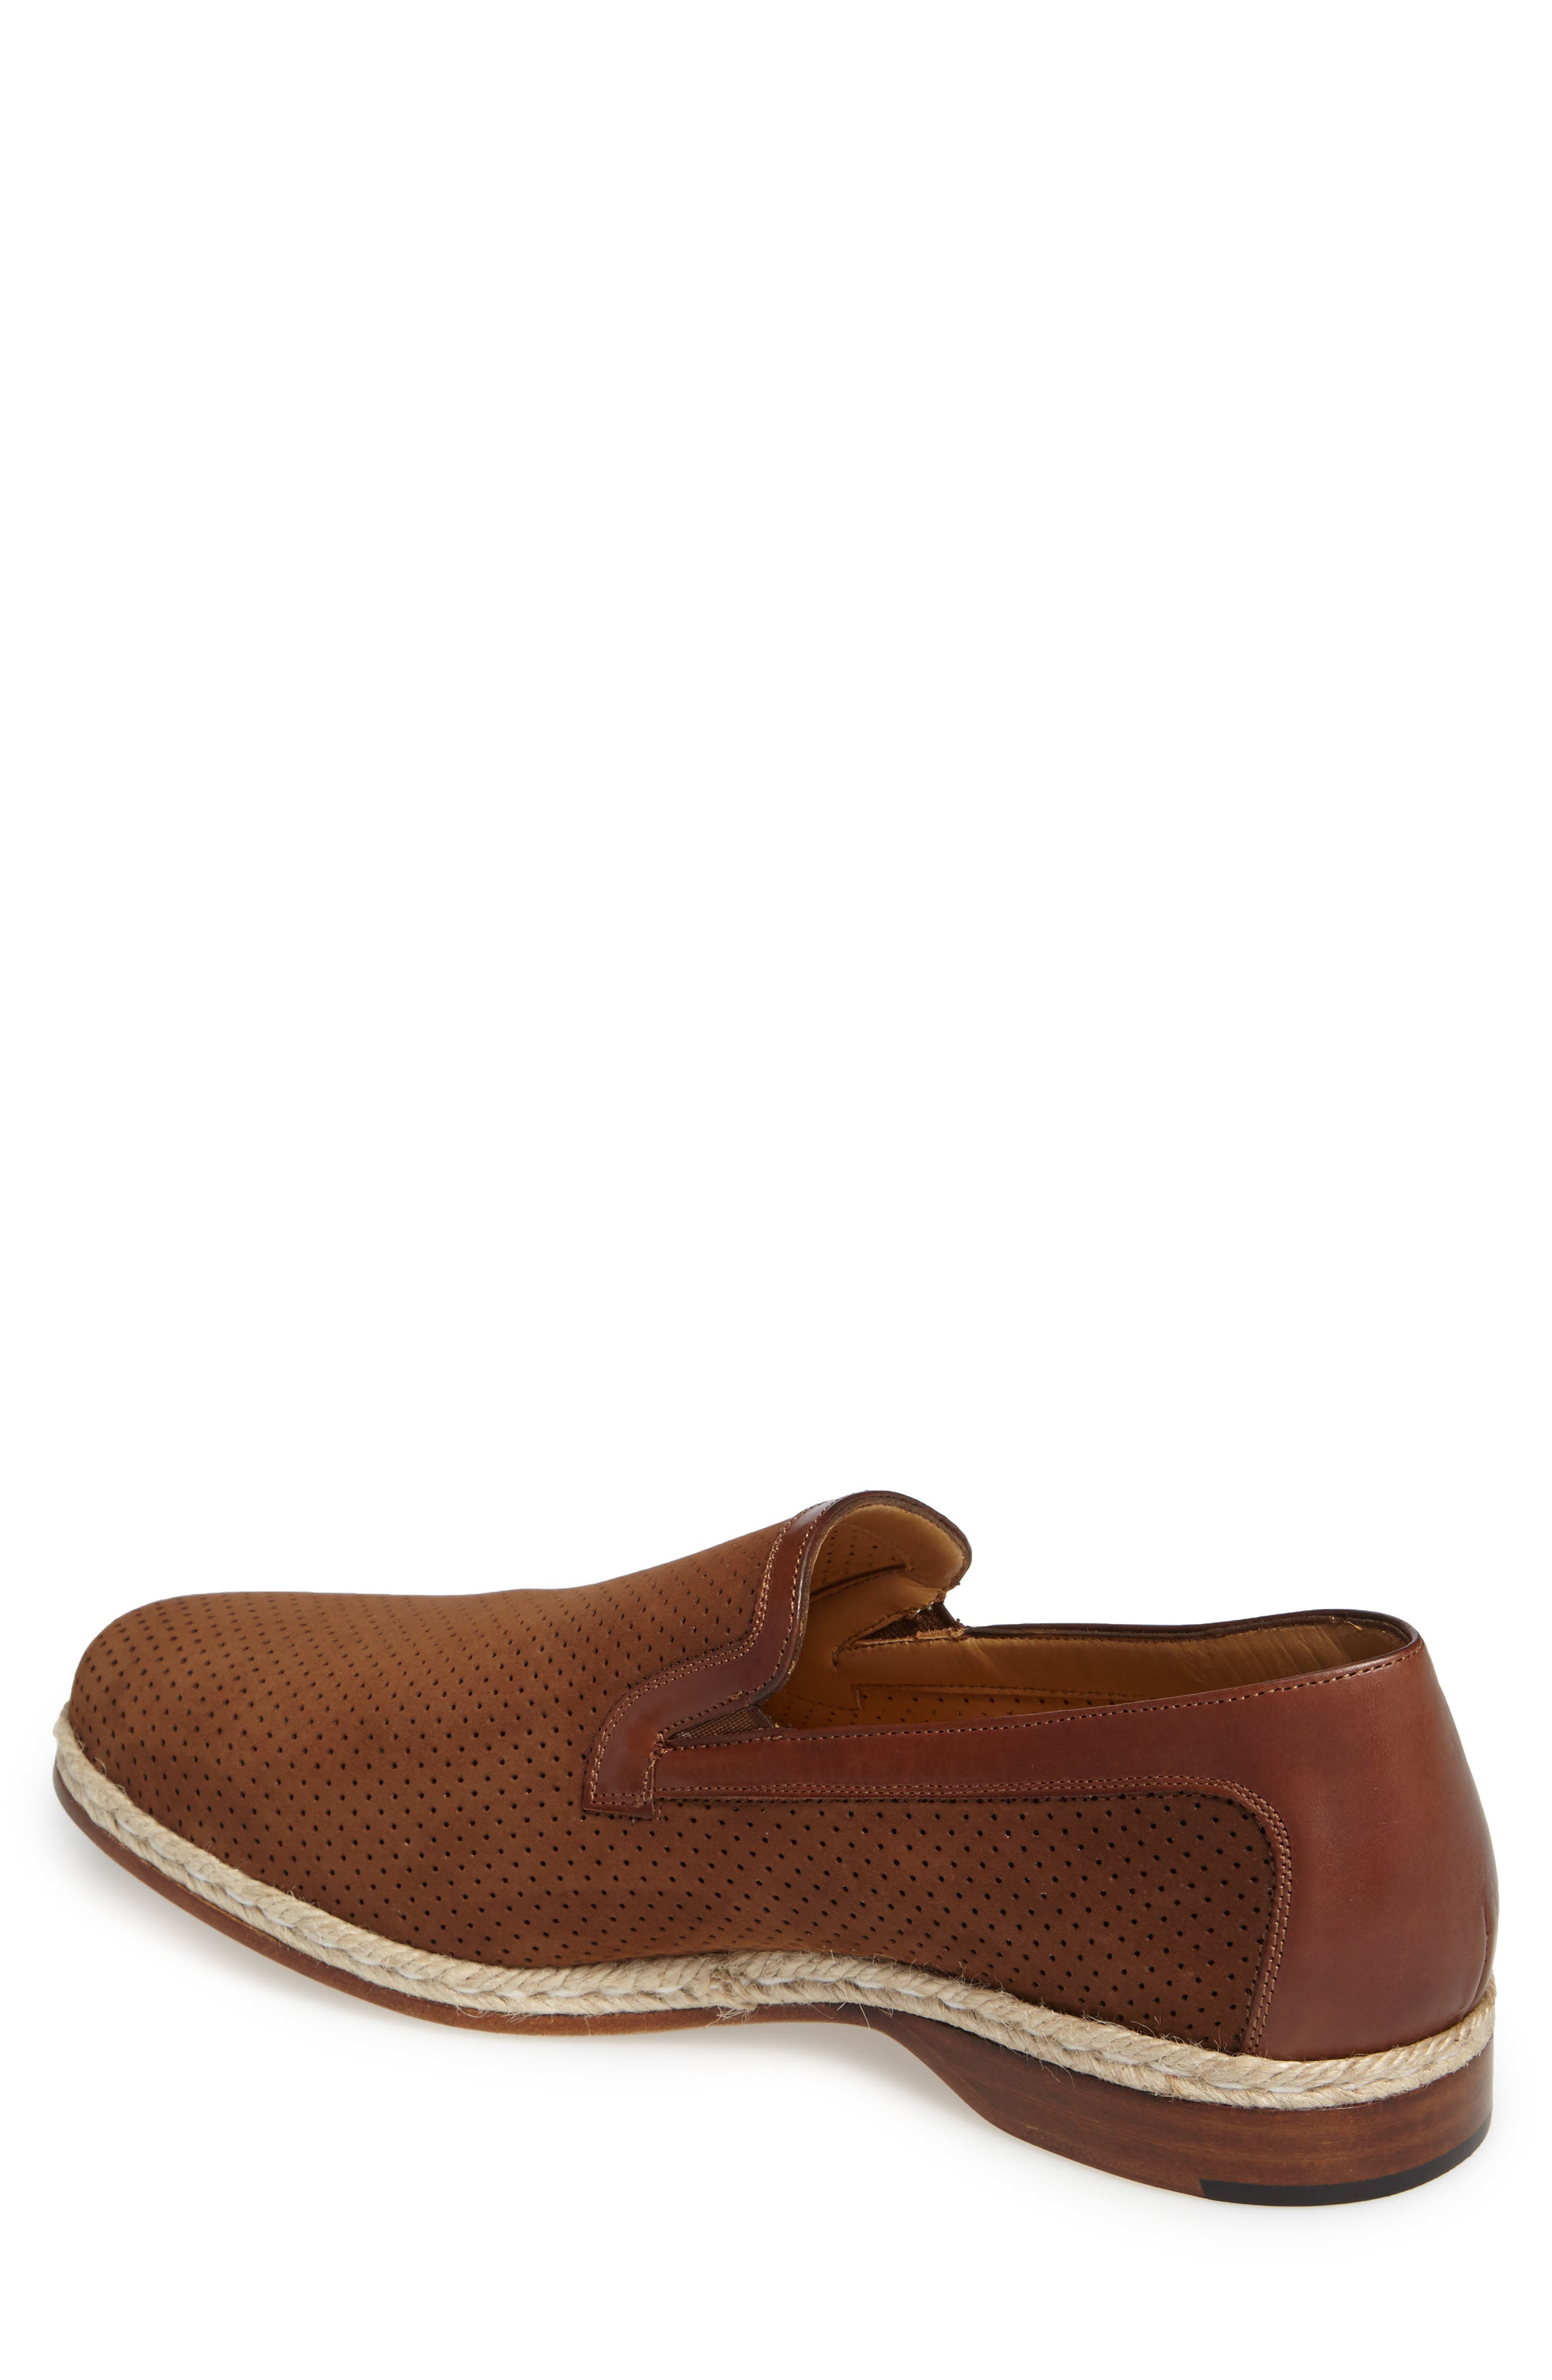 Marcet Perforated Loafer,                             Alternate thumbnail 2, color,                             200